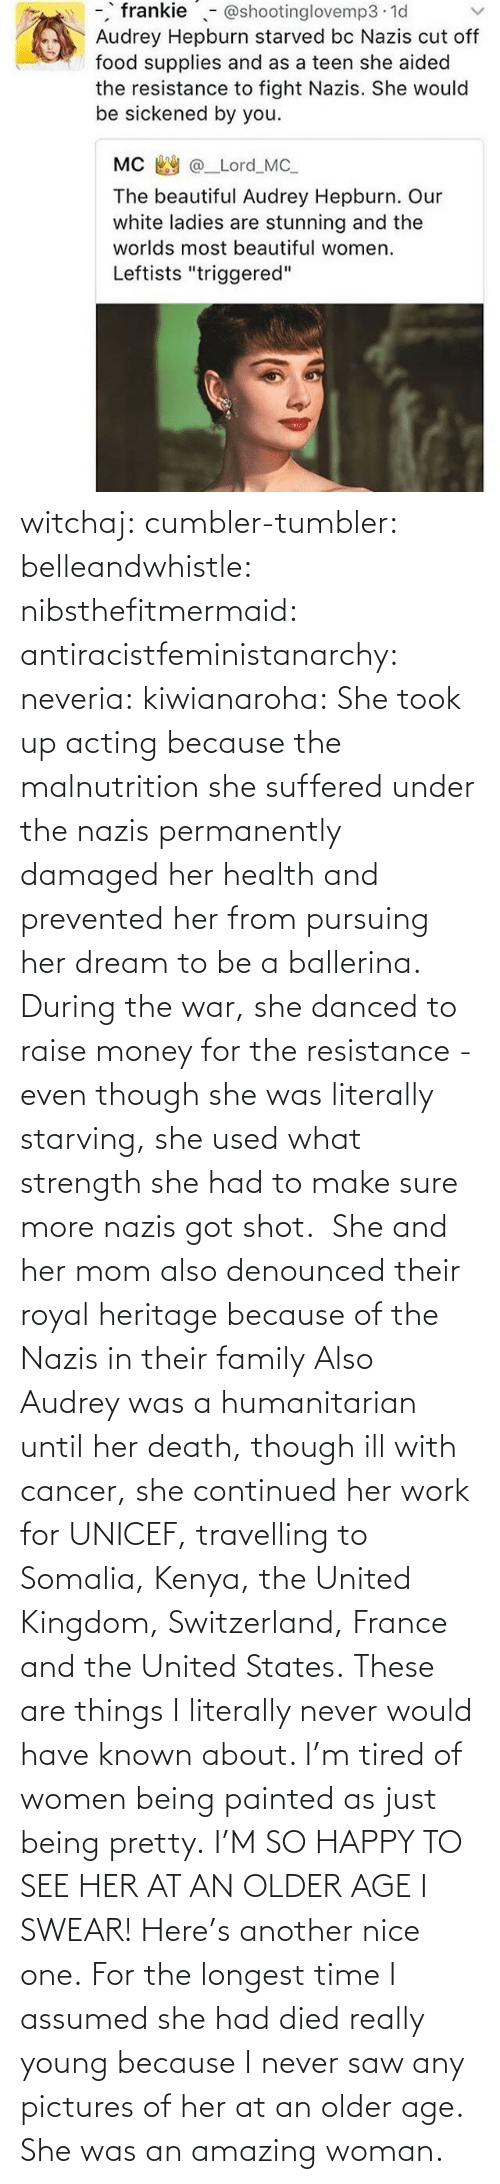 So Happy: witchaj: cumbler-tumbler:  belleandwhistle:  nibsthefitmermaid:  antiracistfeministanarchy:  neveria:  kiwianaroha: She took up acting because the malnutrition she suffered under the nazis permanently damaged her health and prevented her from pursuing her dream to be a ballerina. During the war, she danced to raise money for the resistance - even though she was literally starving, she used what strength she had to make sure more nazis got shot.  She and her mom also denounced their royal heritage because of the Nazis in their family  Also Audrey was a humanitarian until her death, though ill with cancer, she continued her work for UNICEF, travelling to Somalia, Kenya, the United Kingdom, Switzerland, France and the United States.  These are things I literally never would have known about. I'm tired of women being painted as just being pretty.  I'M SO HAPPY TO SEE HER AT AN OLDER AGE I SWEAR!  Here's another nice one.   For the longest time I assumed she had died really young because I never saw any pictures of her at an older age.  She was an amazing woman.